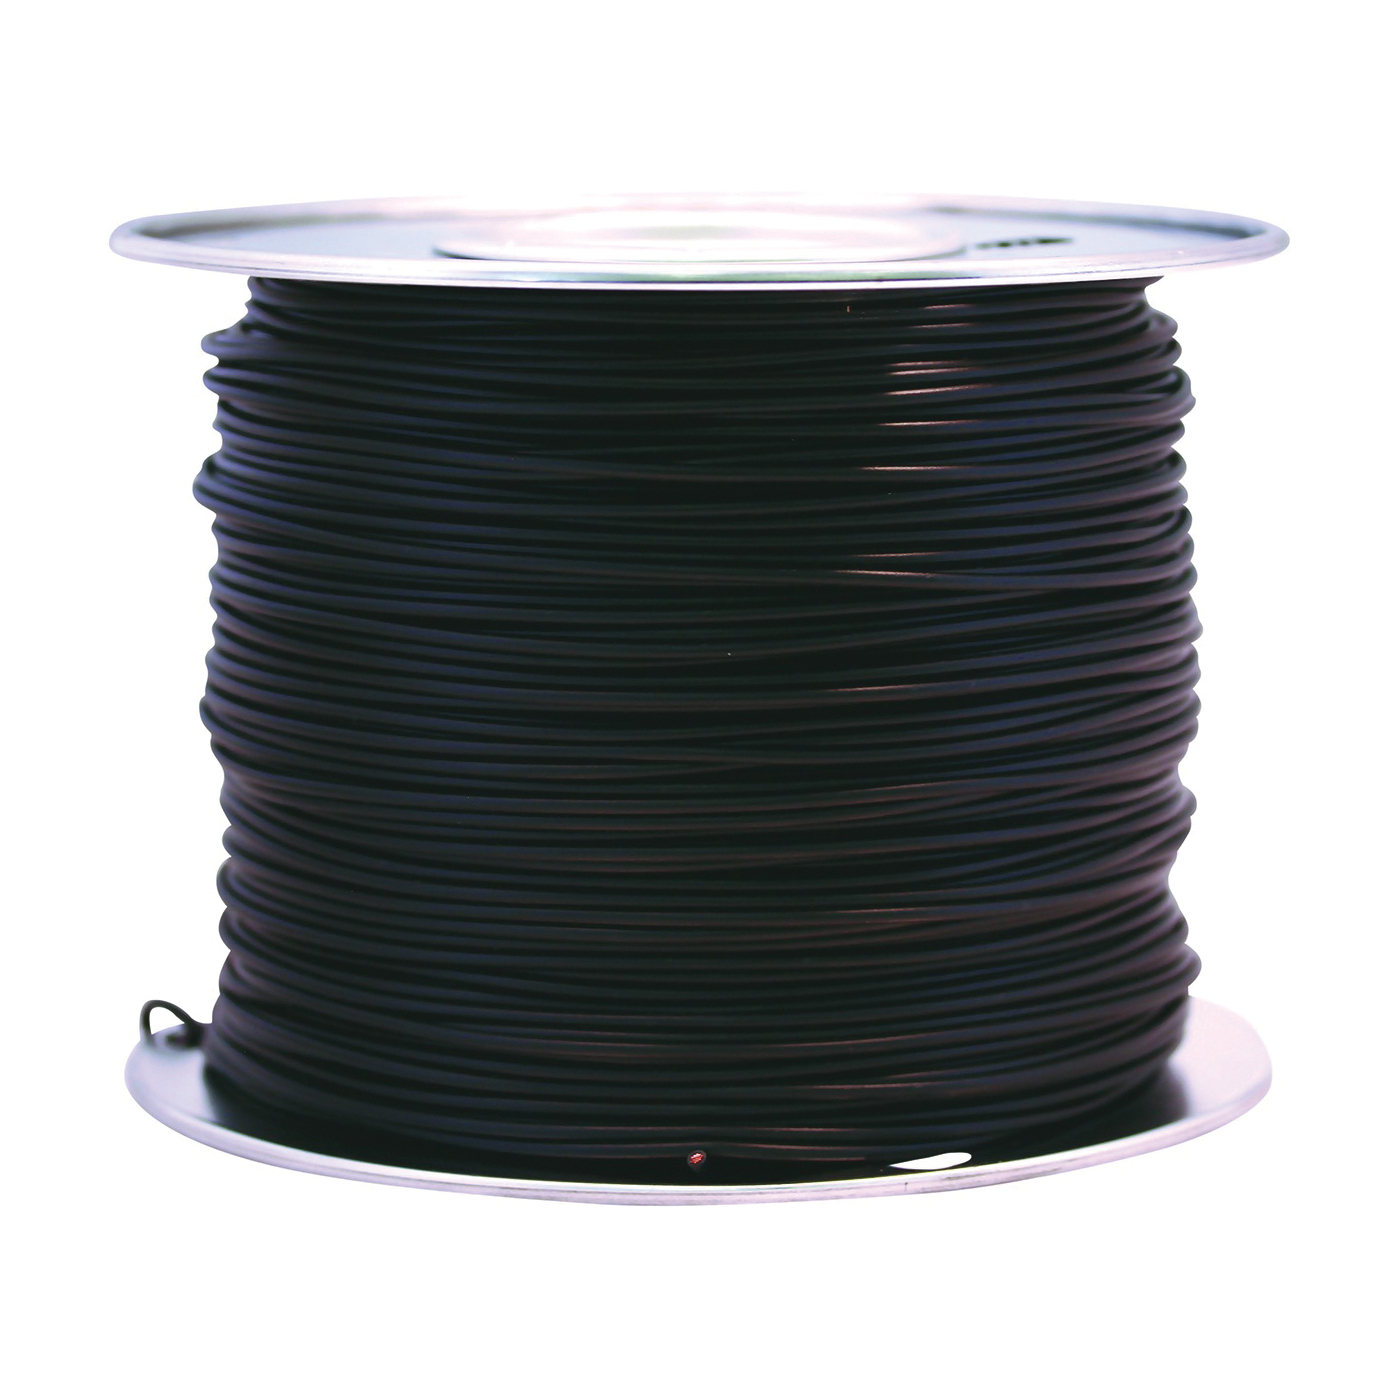 Picture of CCI 55667323 Primary Wire, 18 AWG Wire, 1 -Conductor, 60 VDC, Stranded Copper Conductor, Black Sheath